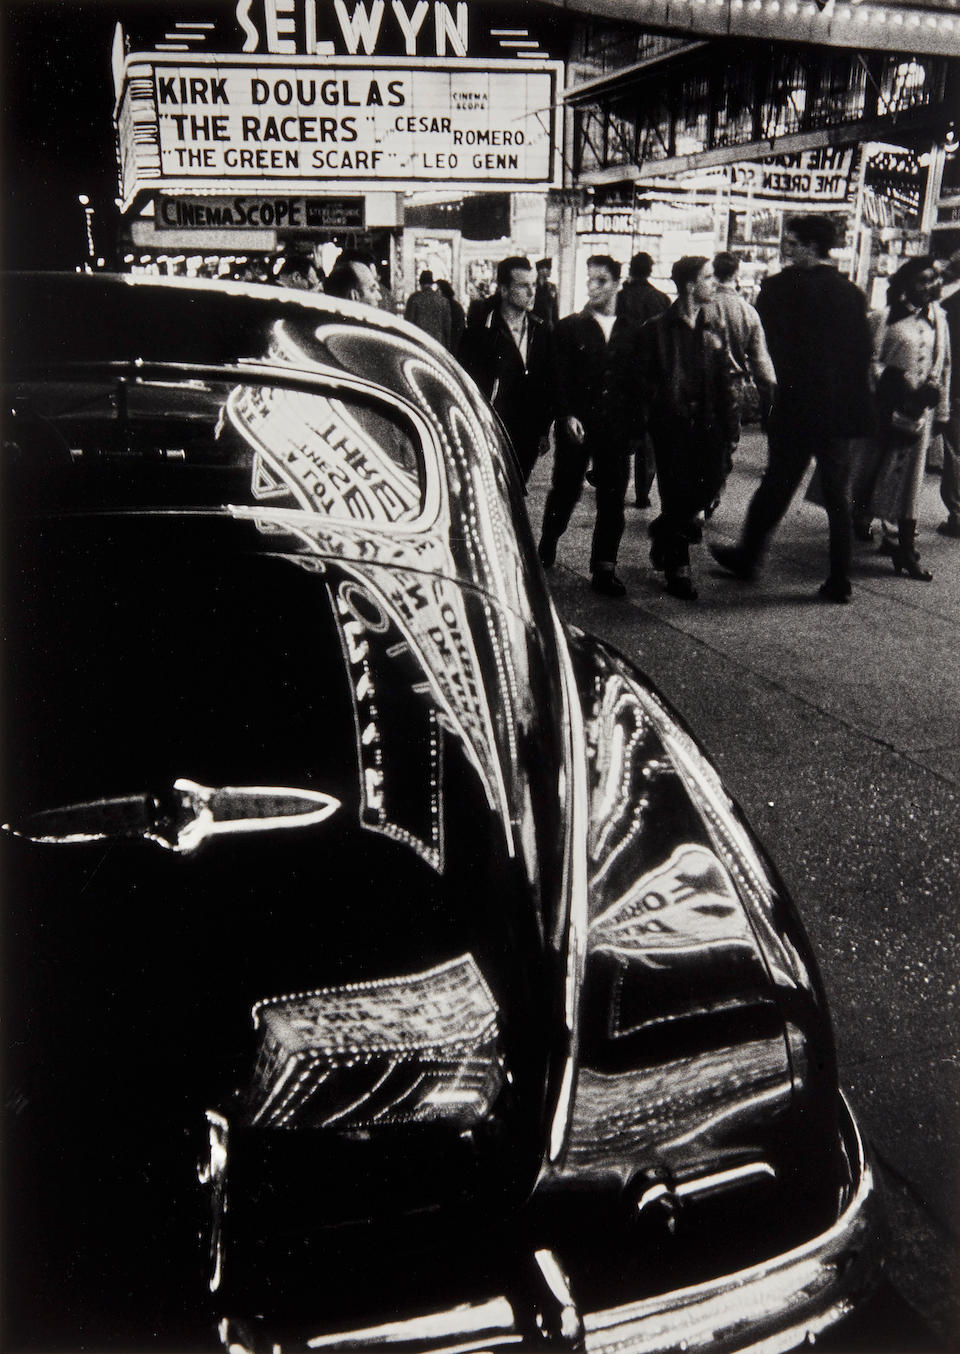 William Klein (born 1928); Selwyn Theatre, 42nd Street, New York;